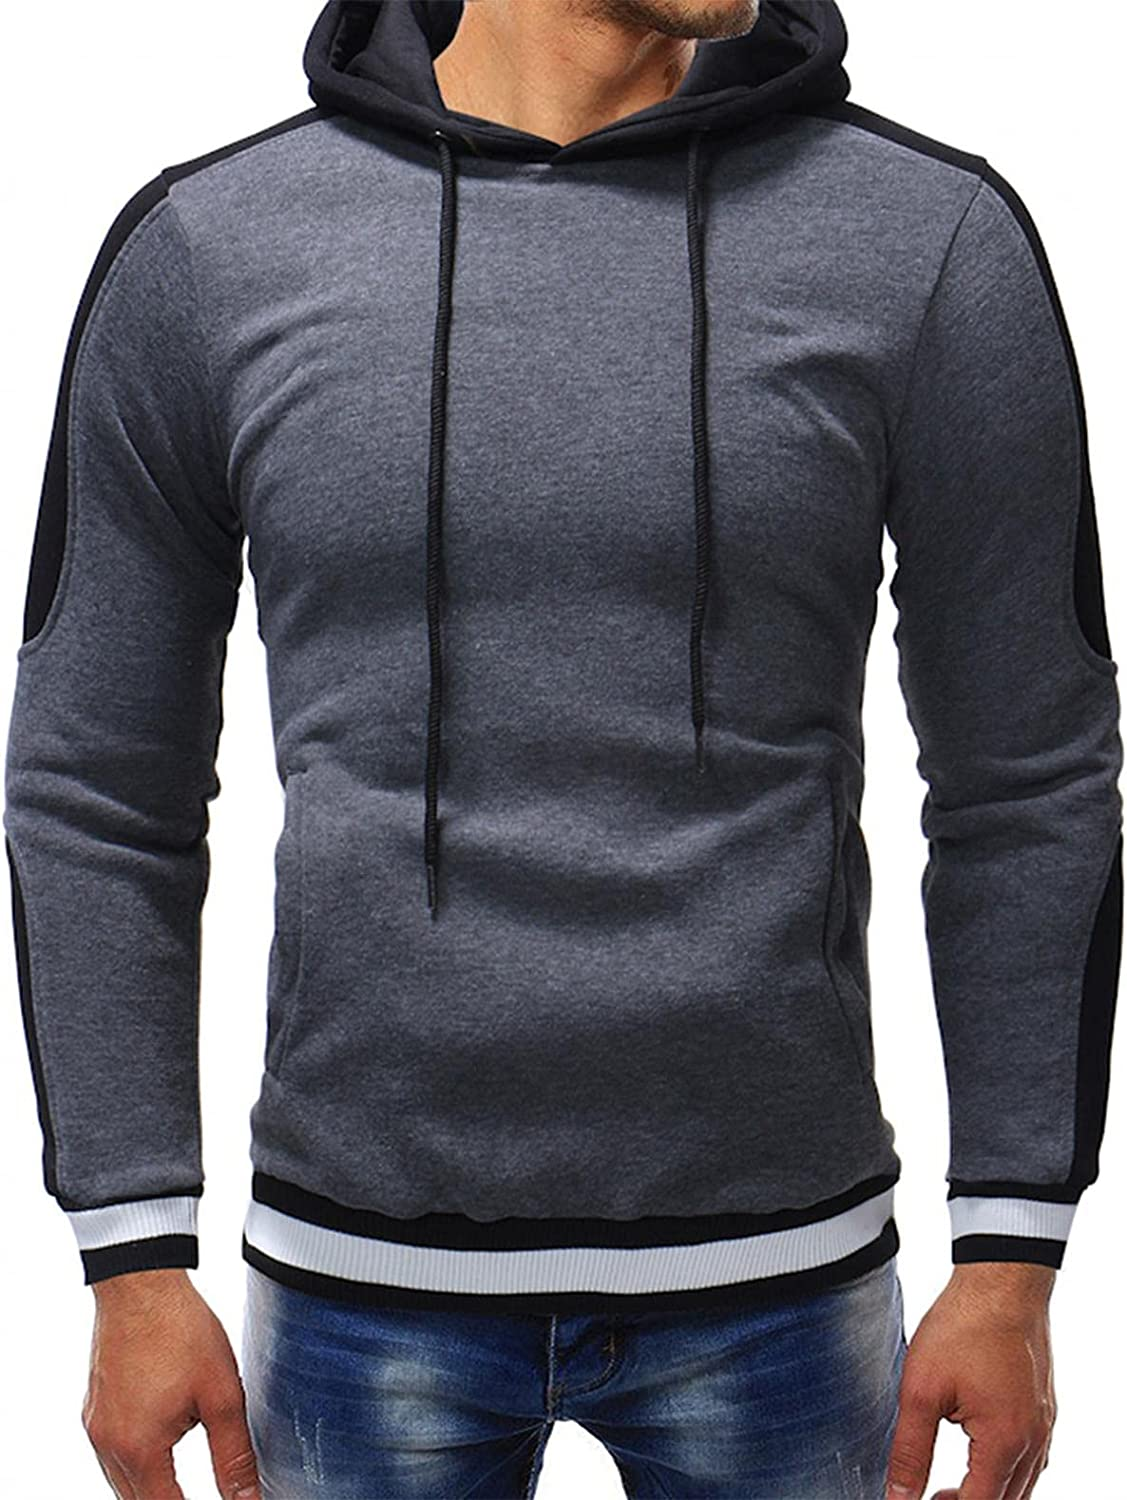 Sweatshirts for Men Cotton Blend Contrast Color Pullover Hooded Fleece Hoodies Cozy Novelty Sport Athletic Outwear